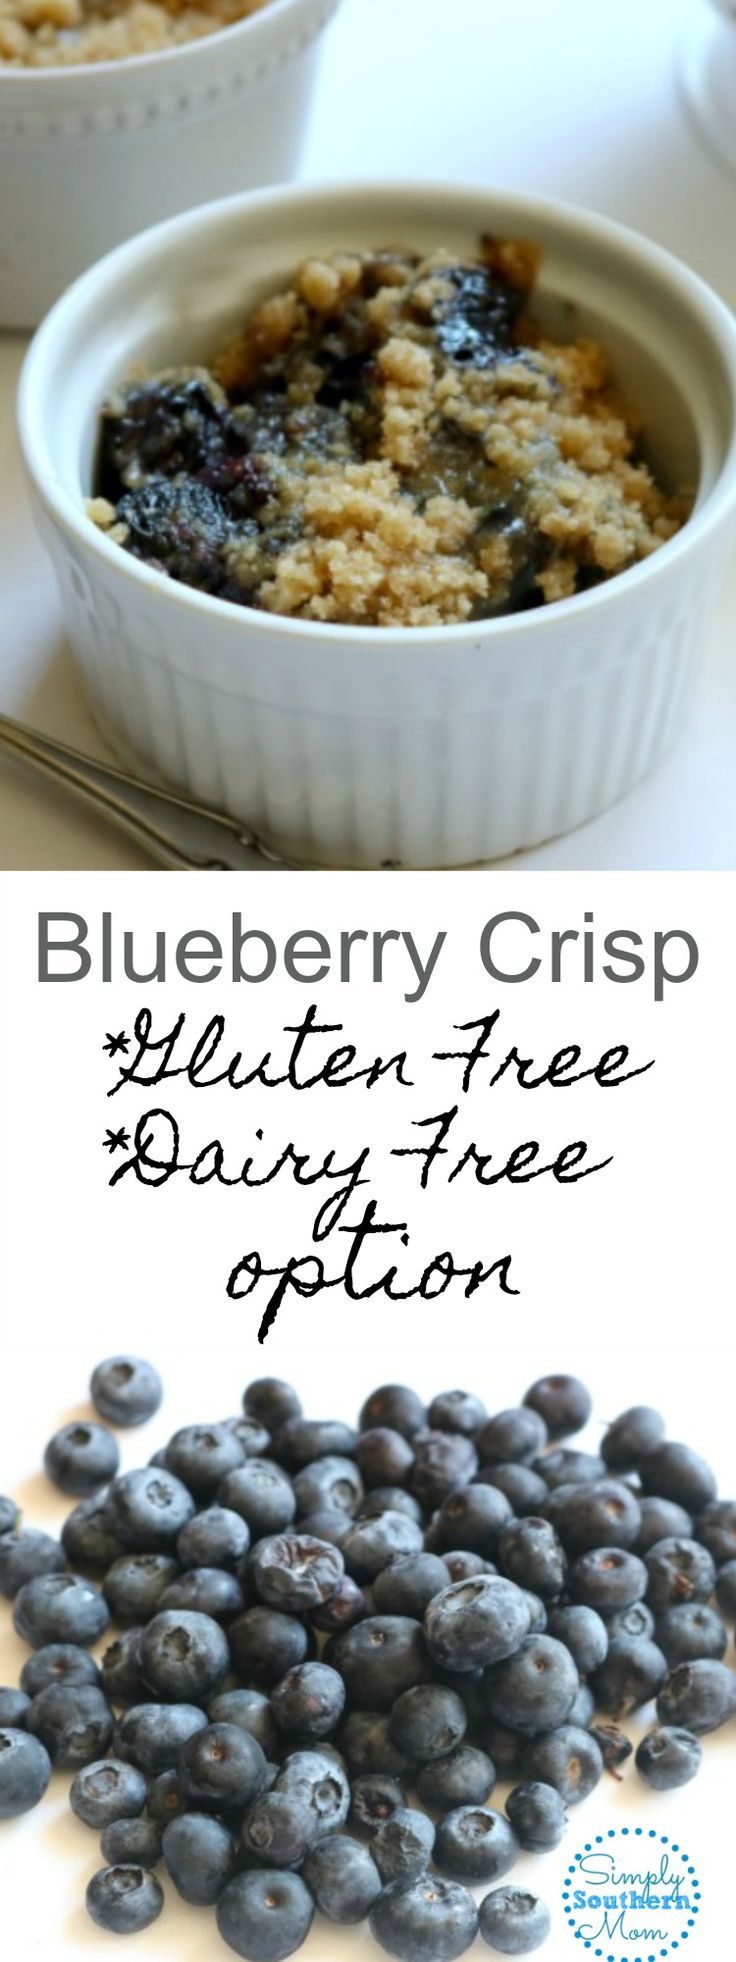 Delicious blueberry crisp recipe is perfect for summer! Gluten Free and Dairy Free options are included.